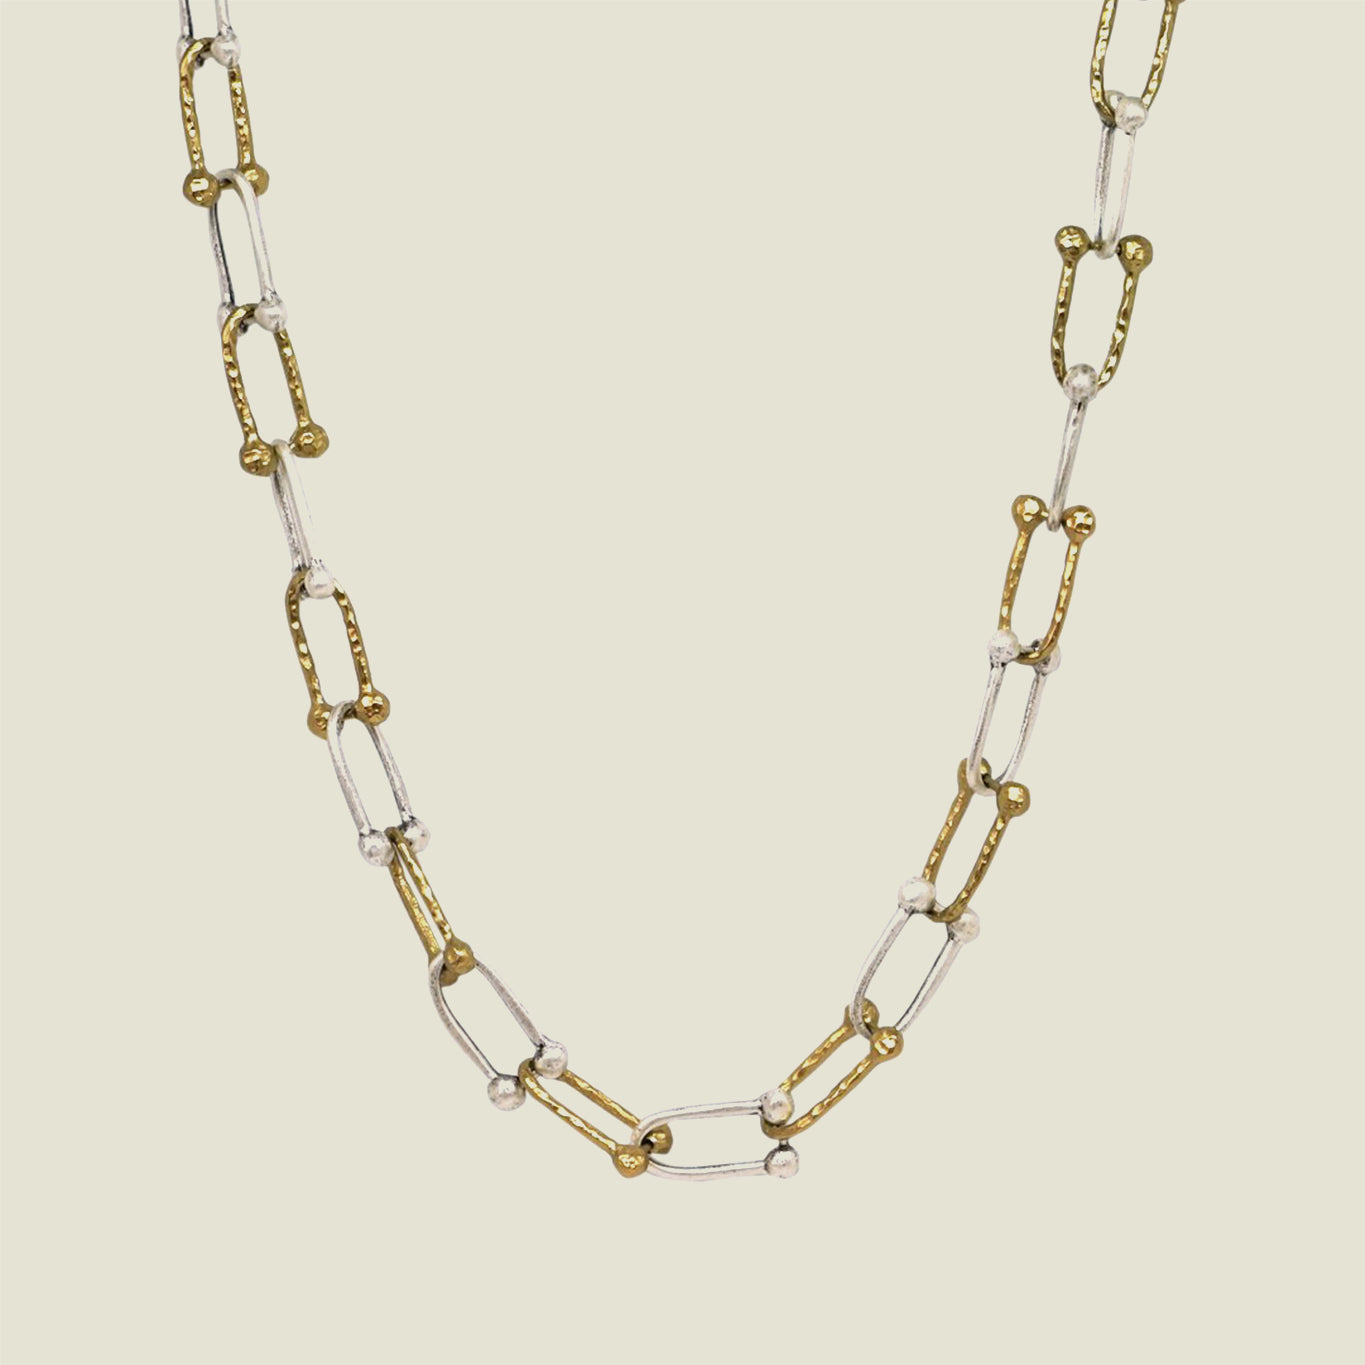 Two Tone Horseshoe Link Necklace - Blackbird General Store